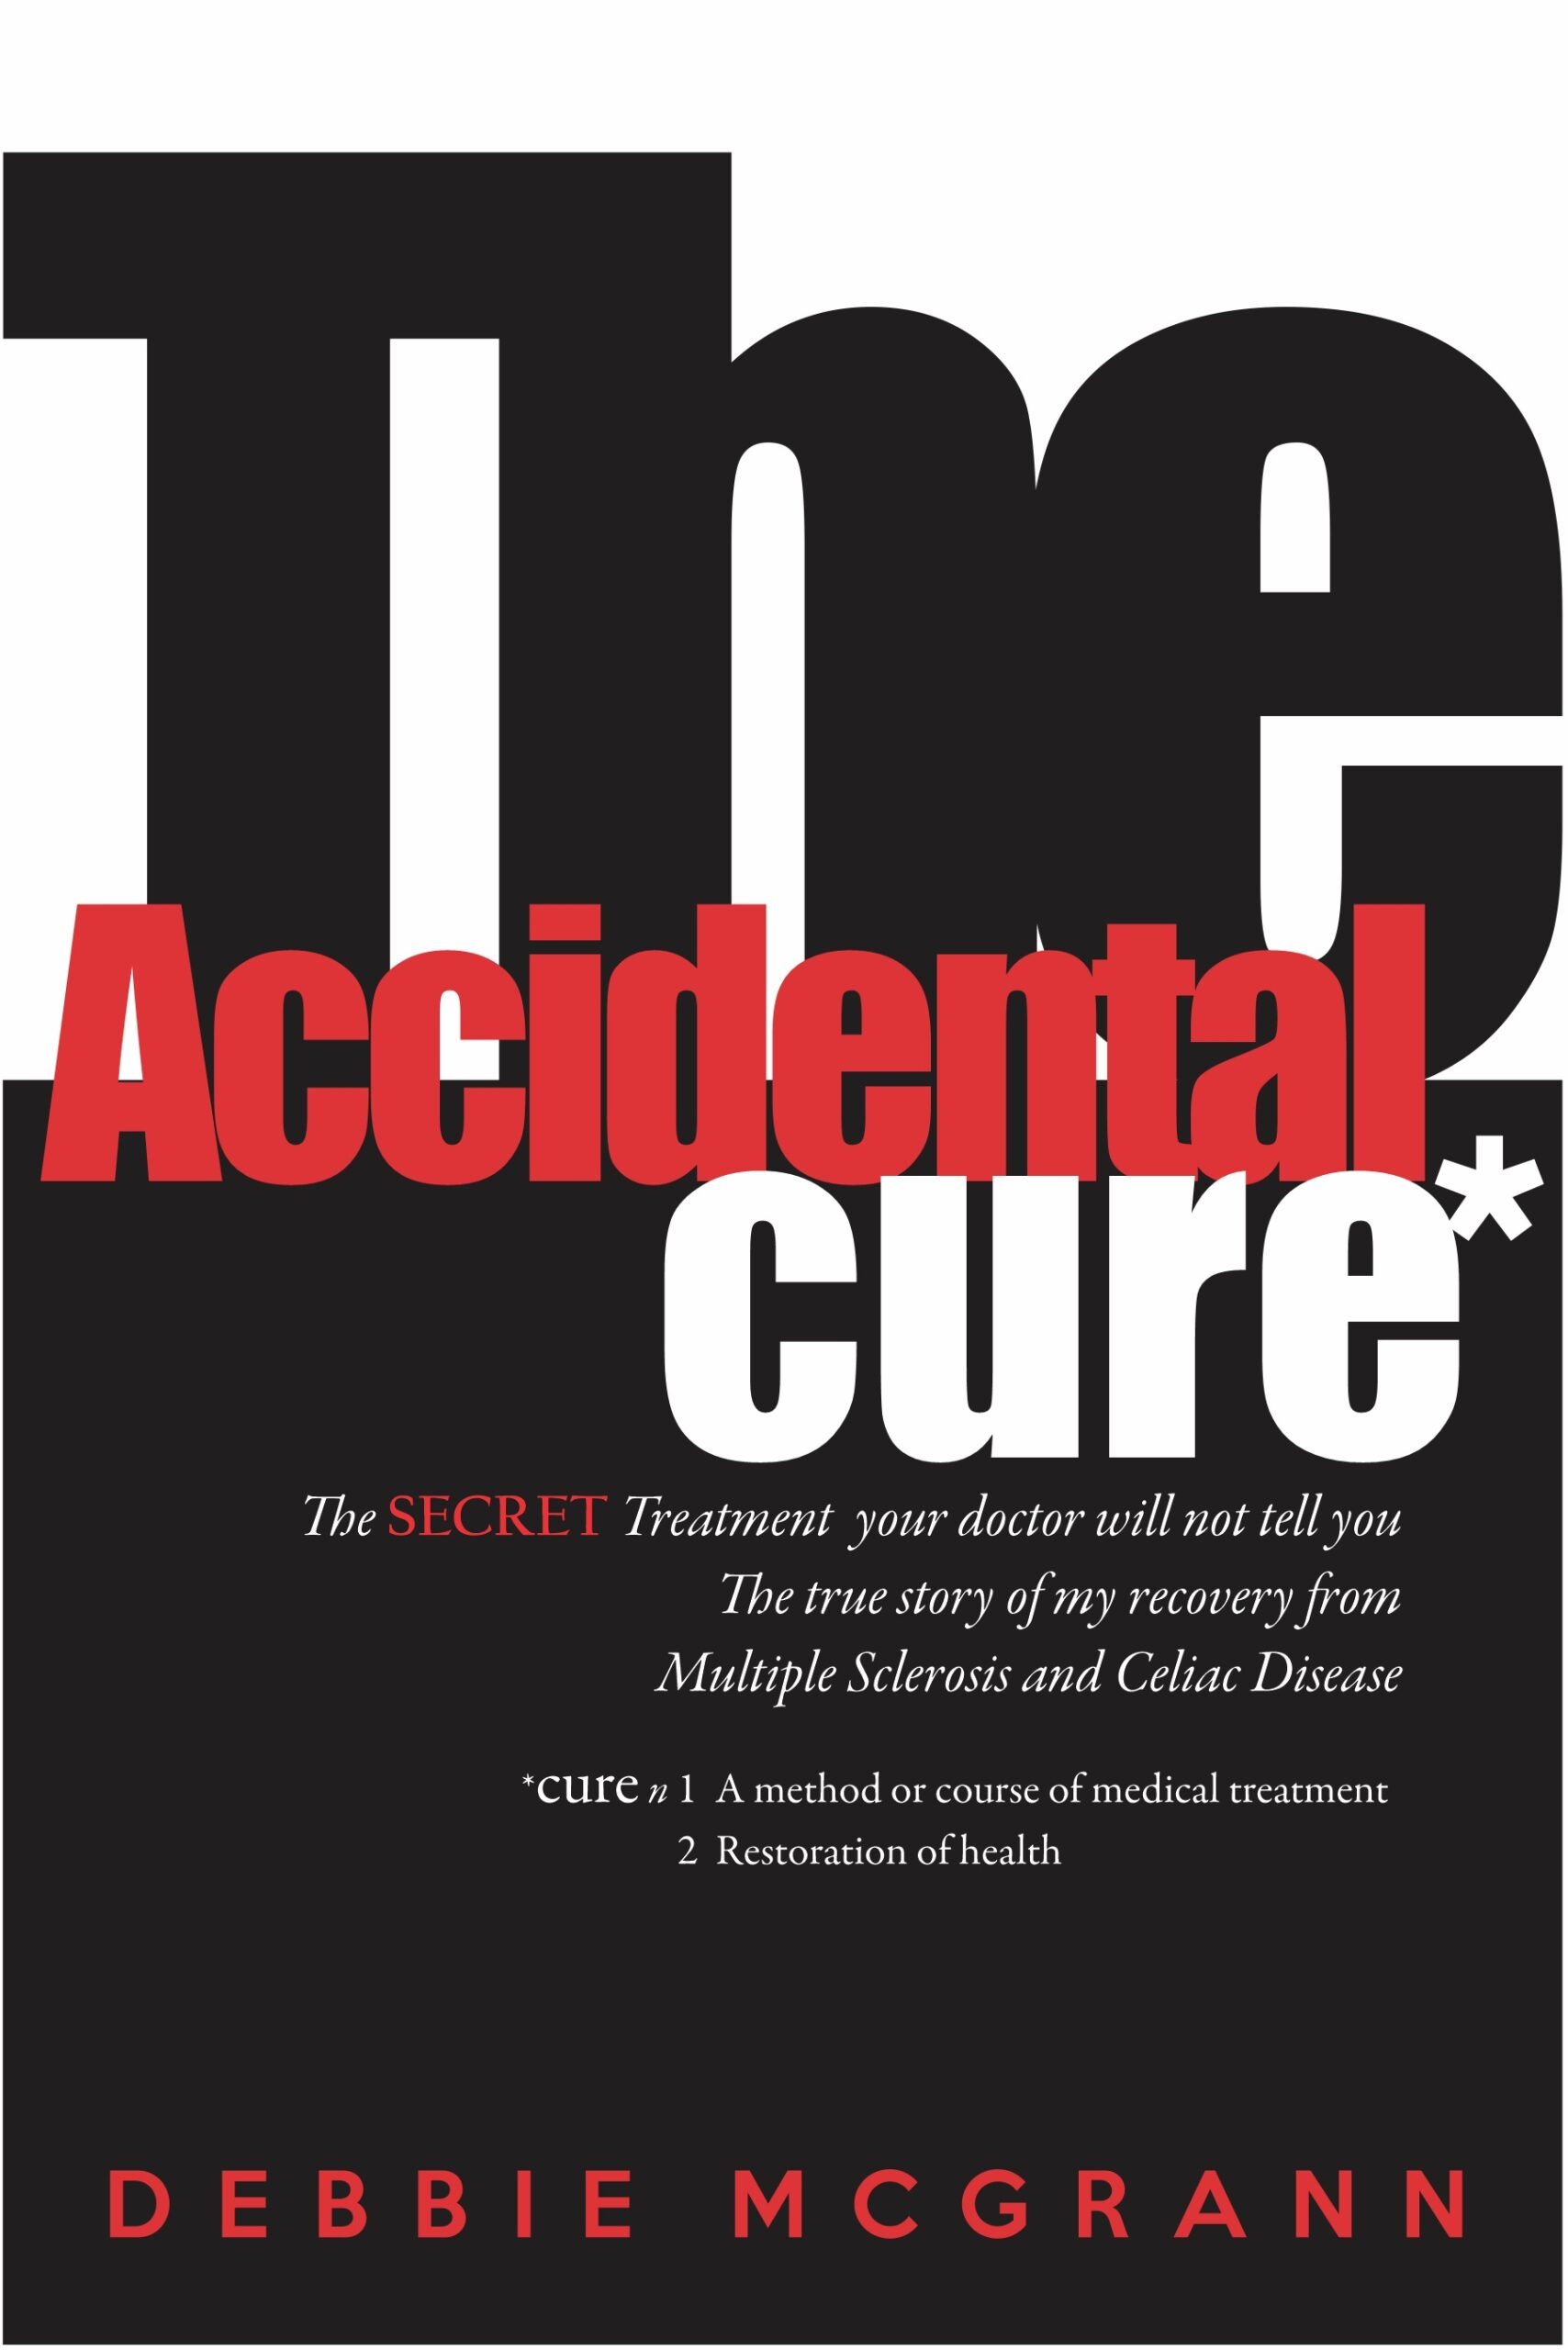 Cover Image of The Accidental Cure - true story of Multiple Sclerosis recovery